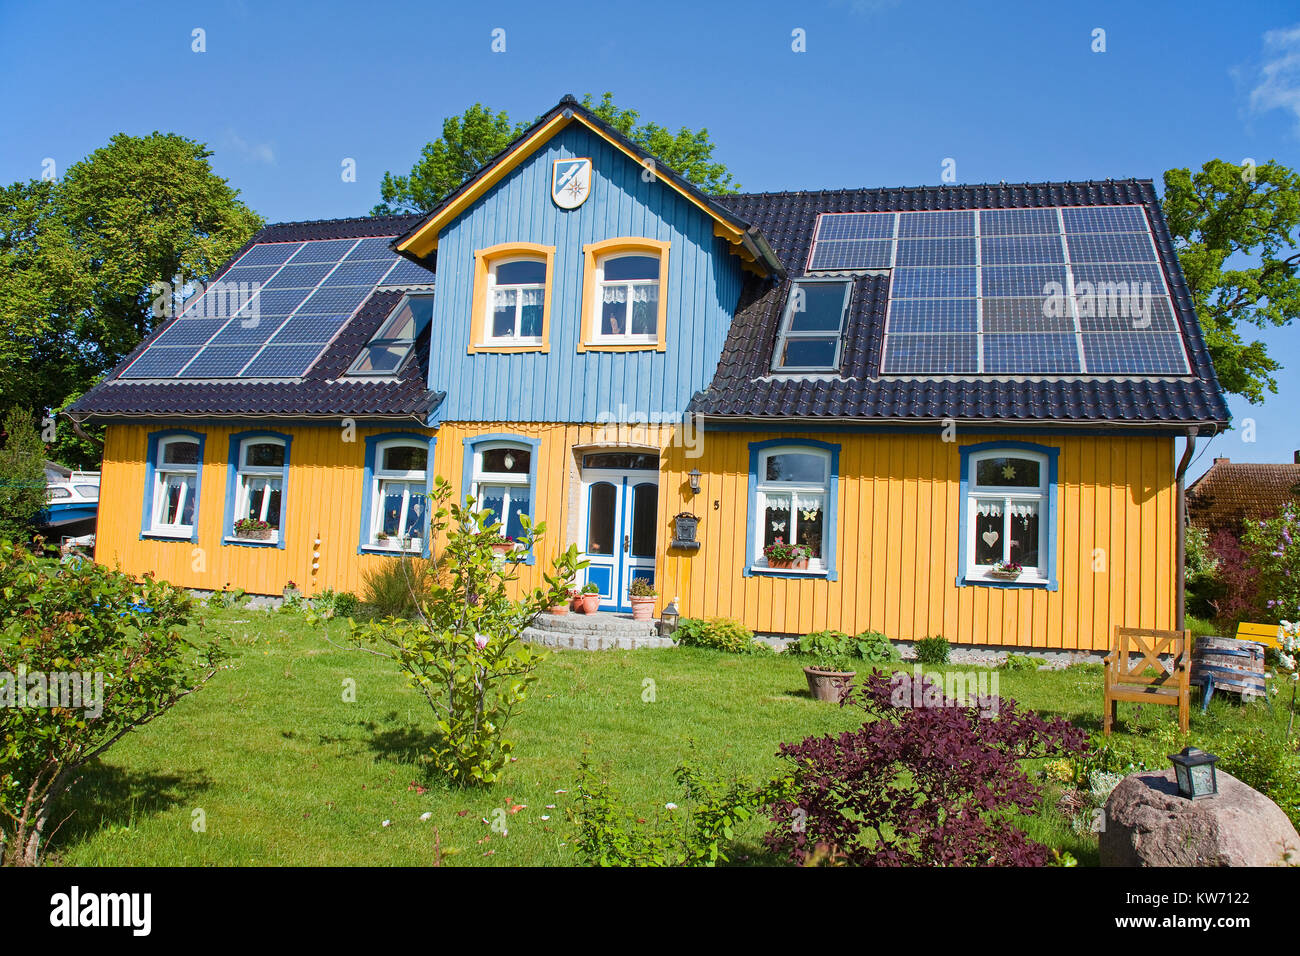 Wooden house with photovoltaics on roof, village Born at Darss, Fischland, Mecklenburg-Western Pomerania, Baltic - Stock Image